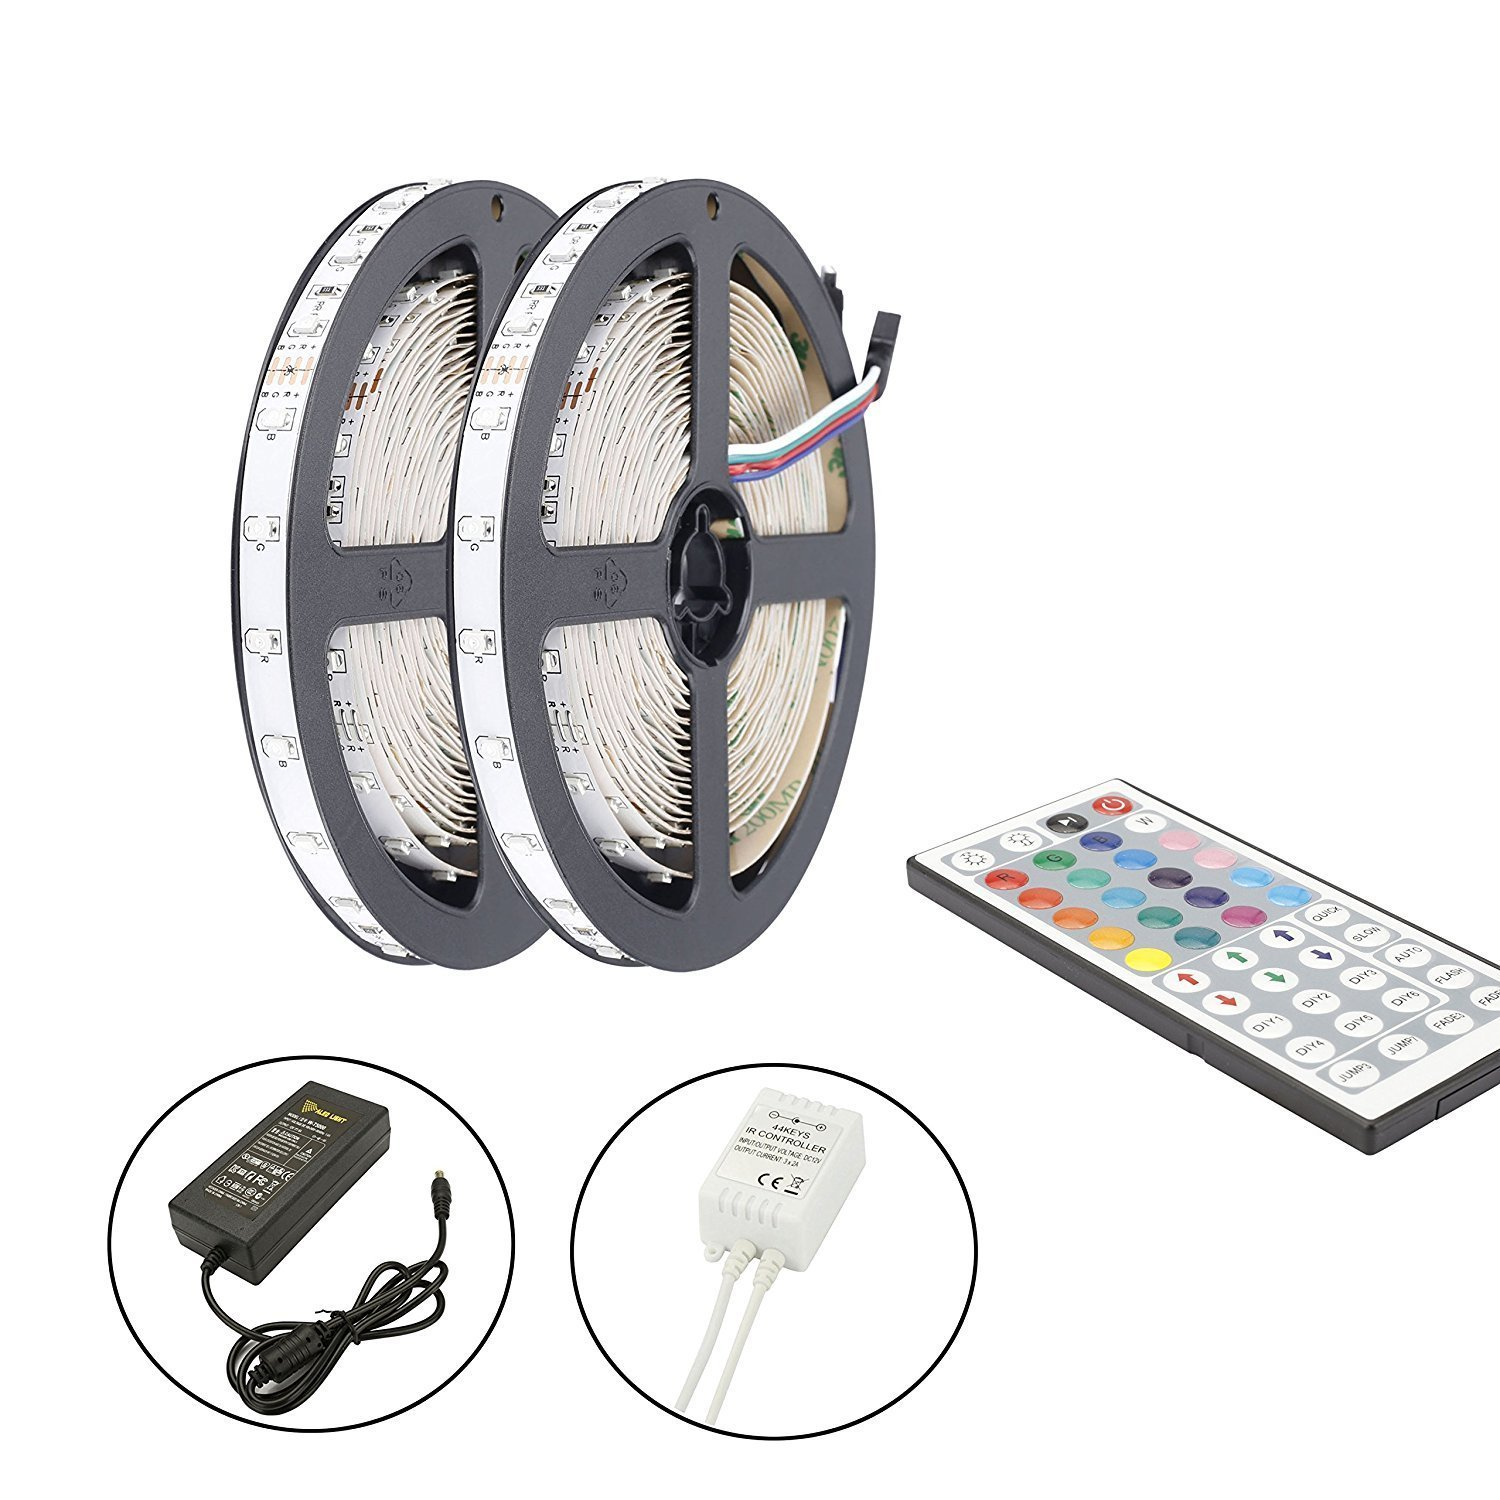 LED Strip Lights Kit, ALED Light LED Flexible Light Strip 32.8Ft/2x5M 5050 150LEDs Non-Waterproof RGB Strip Lighting with Remote DC 12V Power Supply for DIY/Christmas/Party/Decoration (2 Pack) by ALED LIGHT (Image #4)